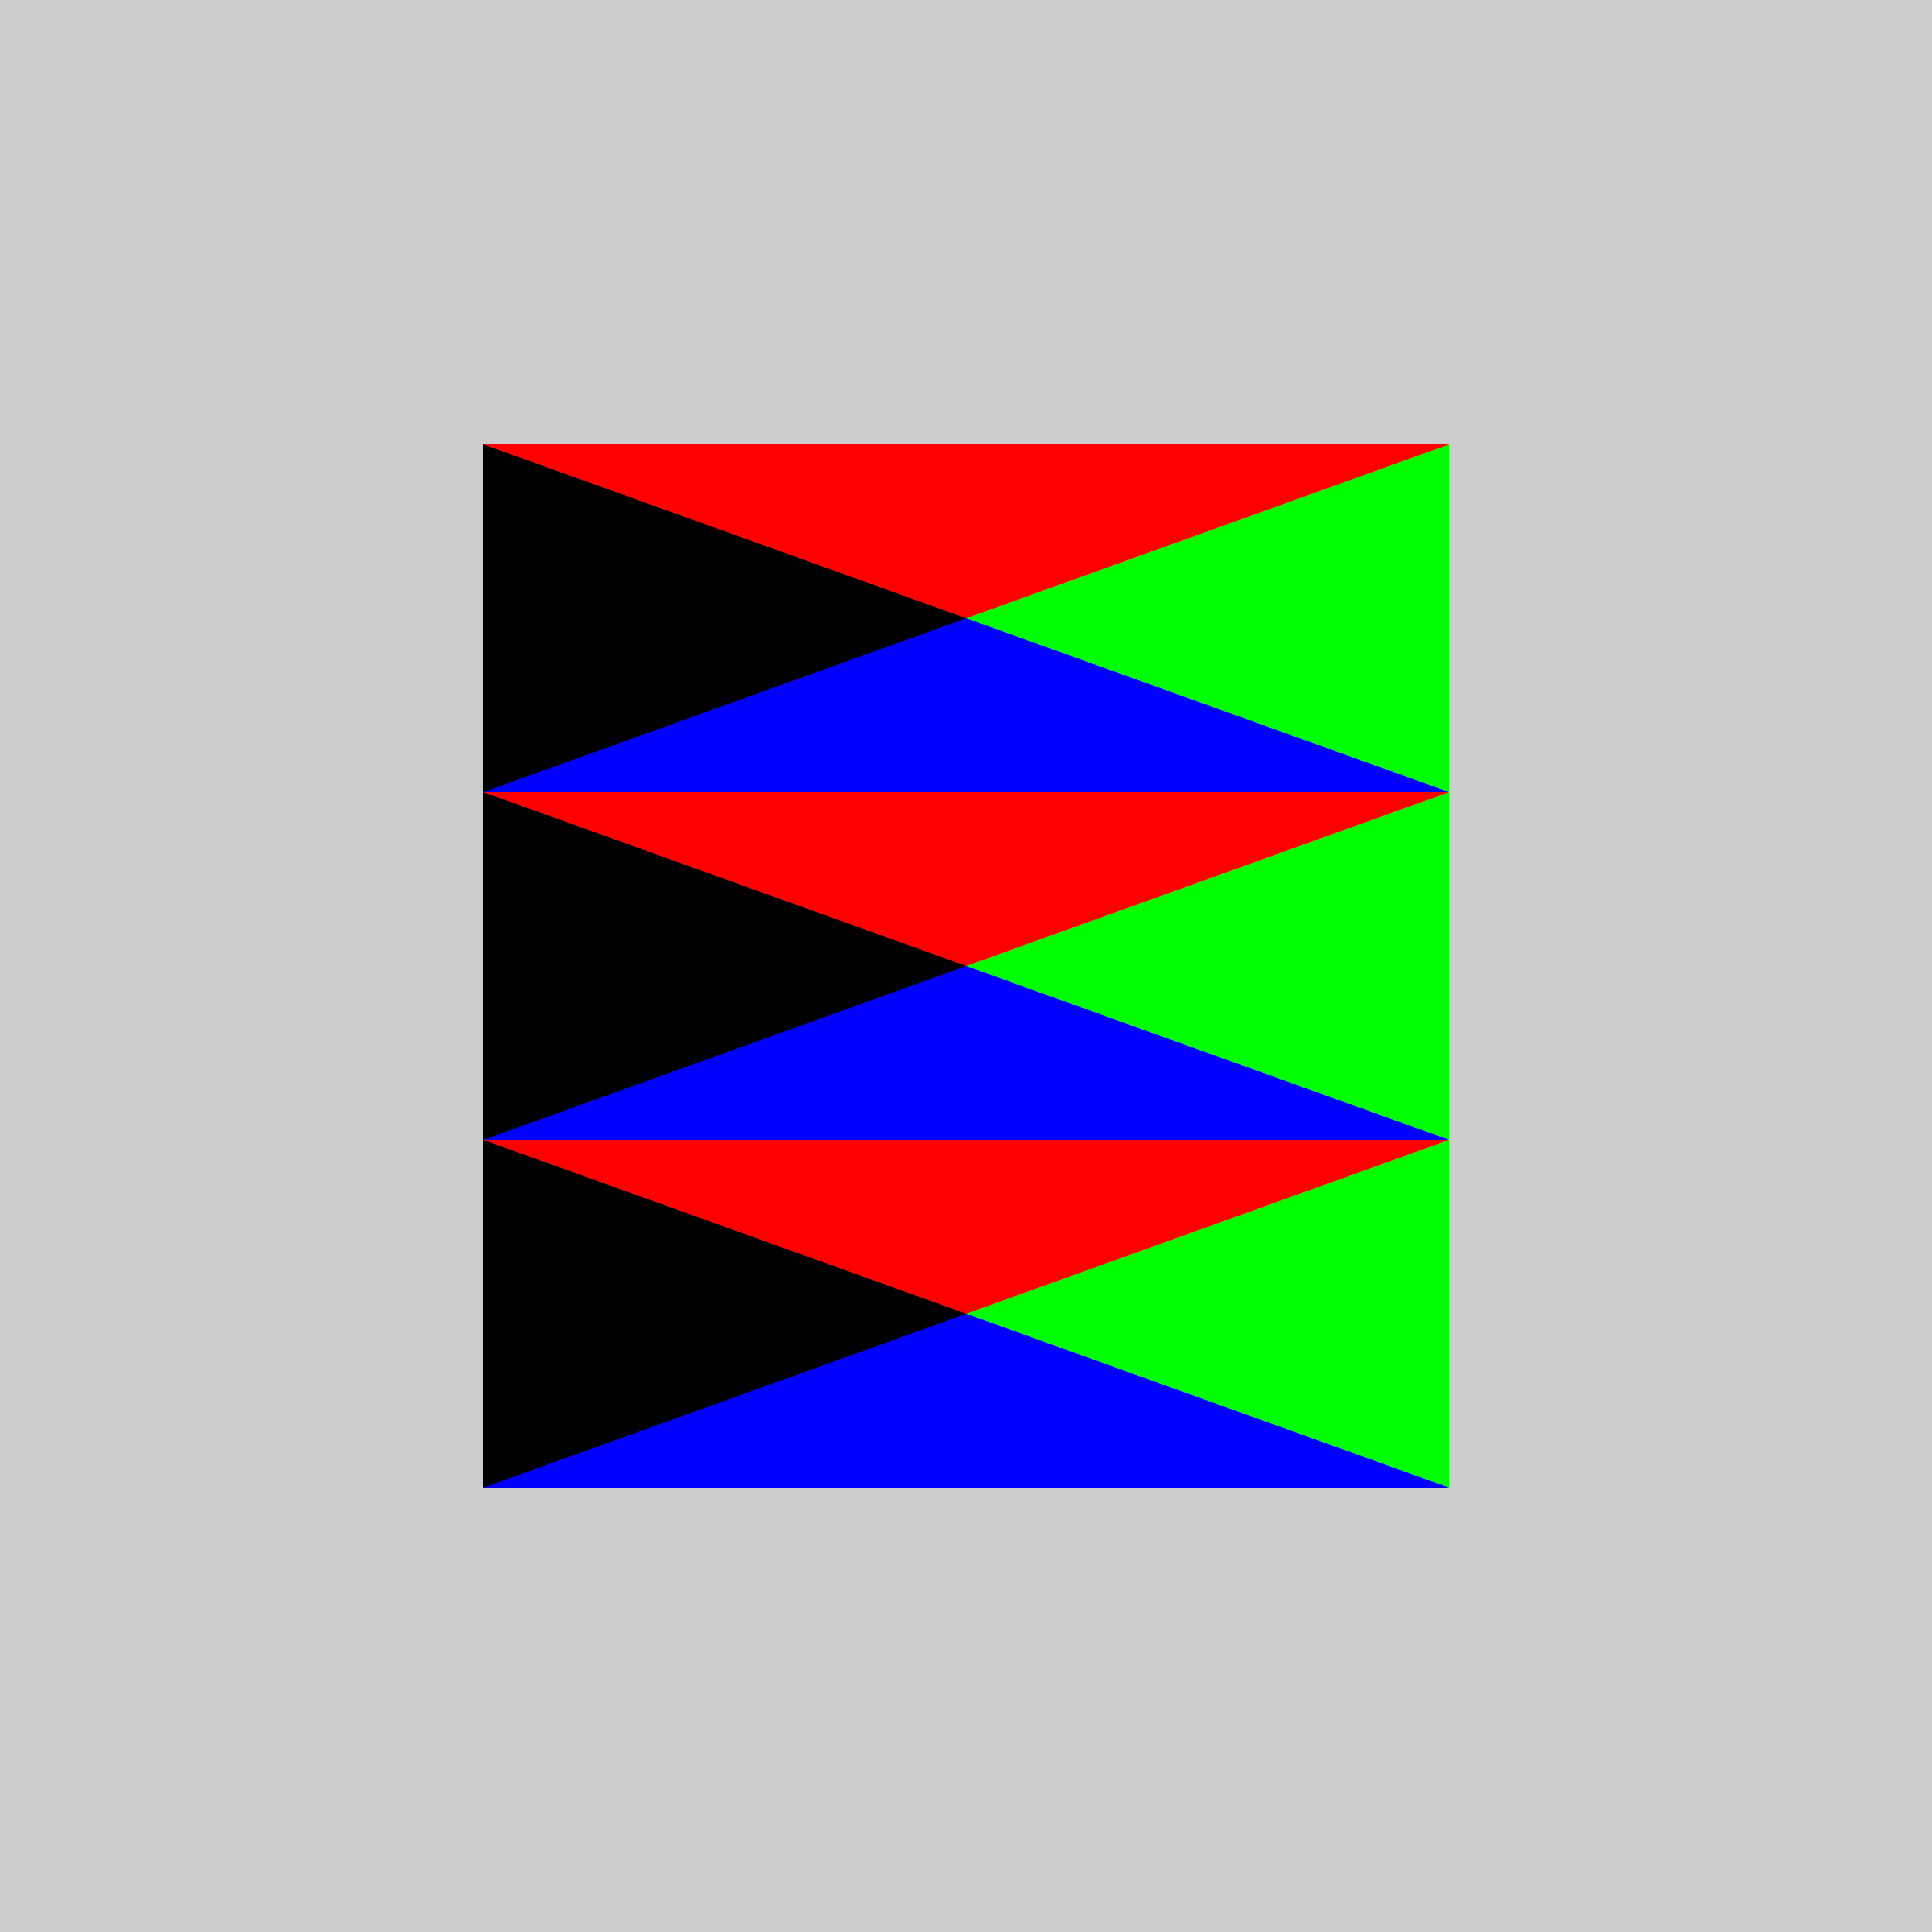 rotating squares (animated) by Lazur URH